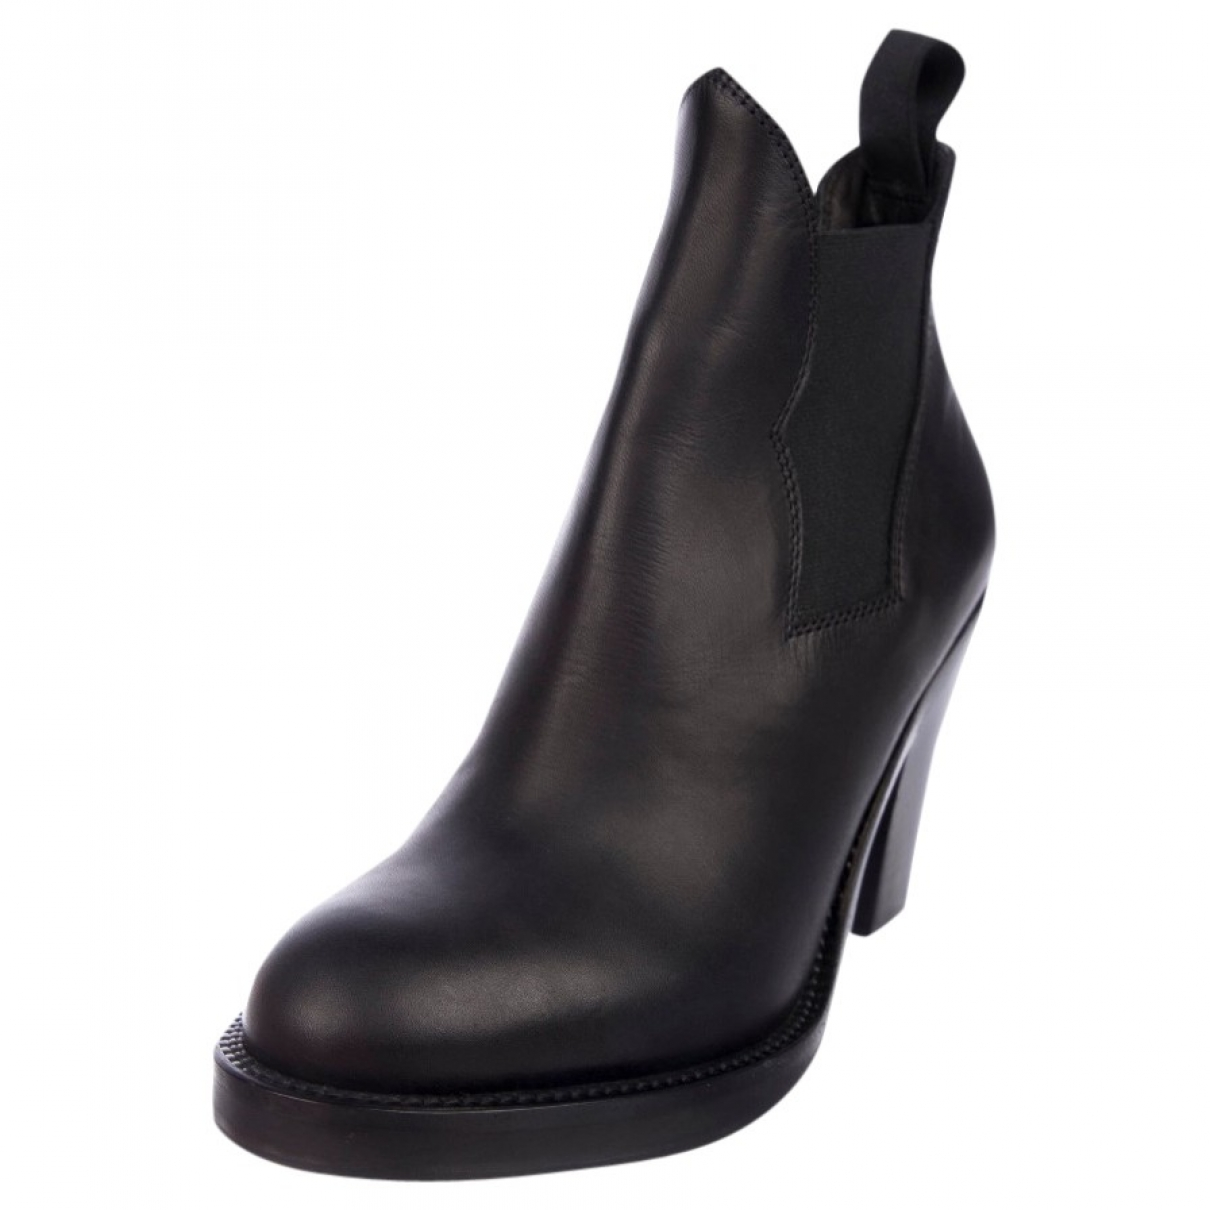 Acne Studios \N Black Leather Ankle boots for Women 36 EU